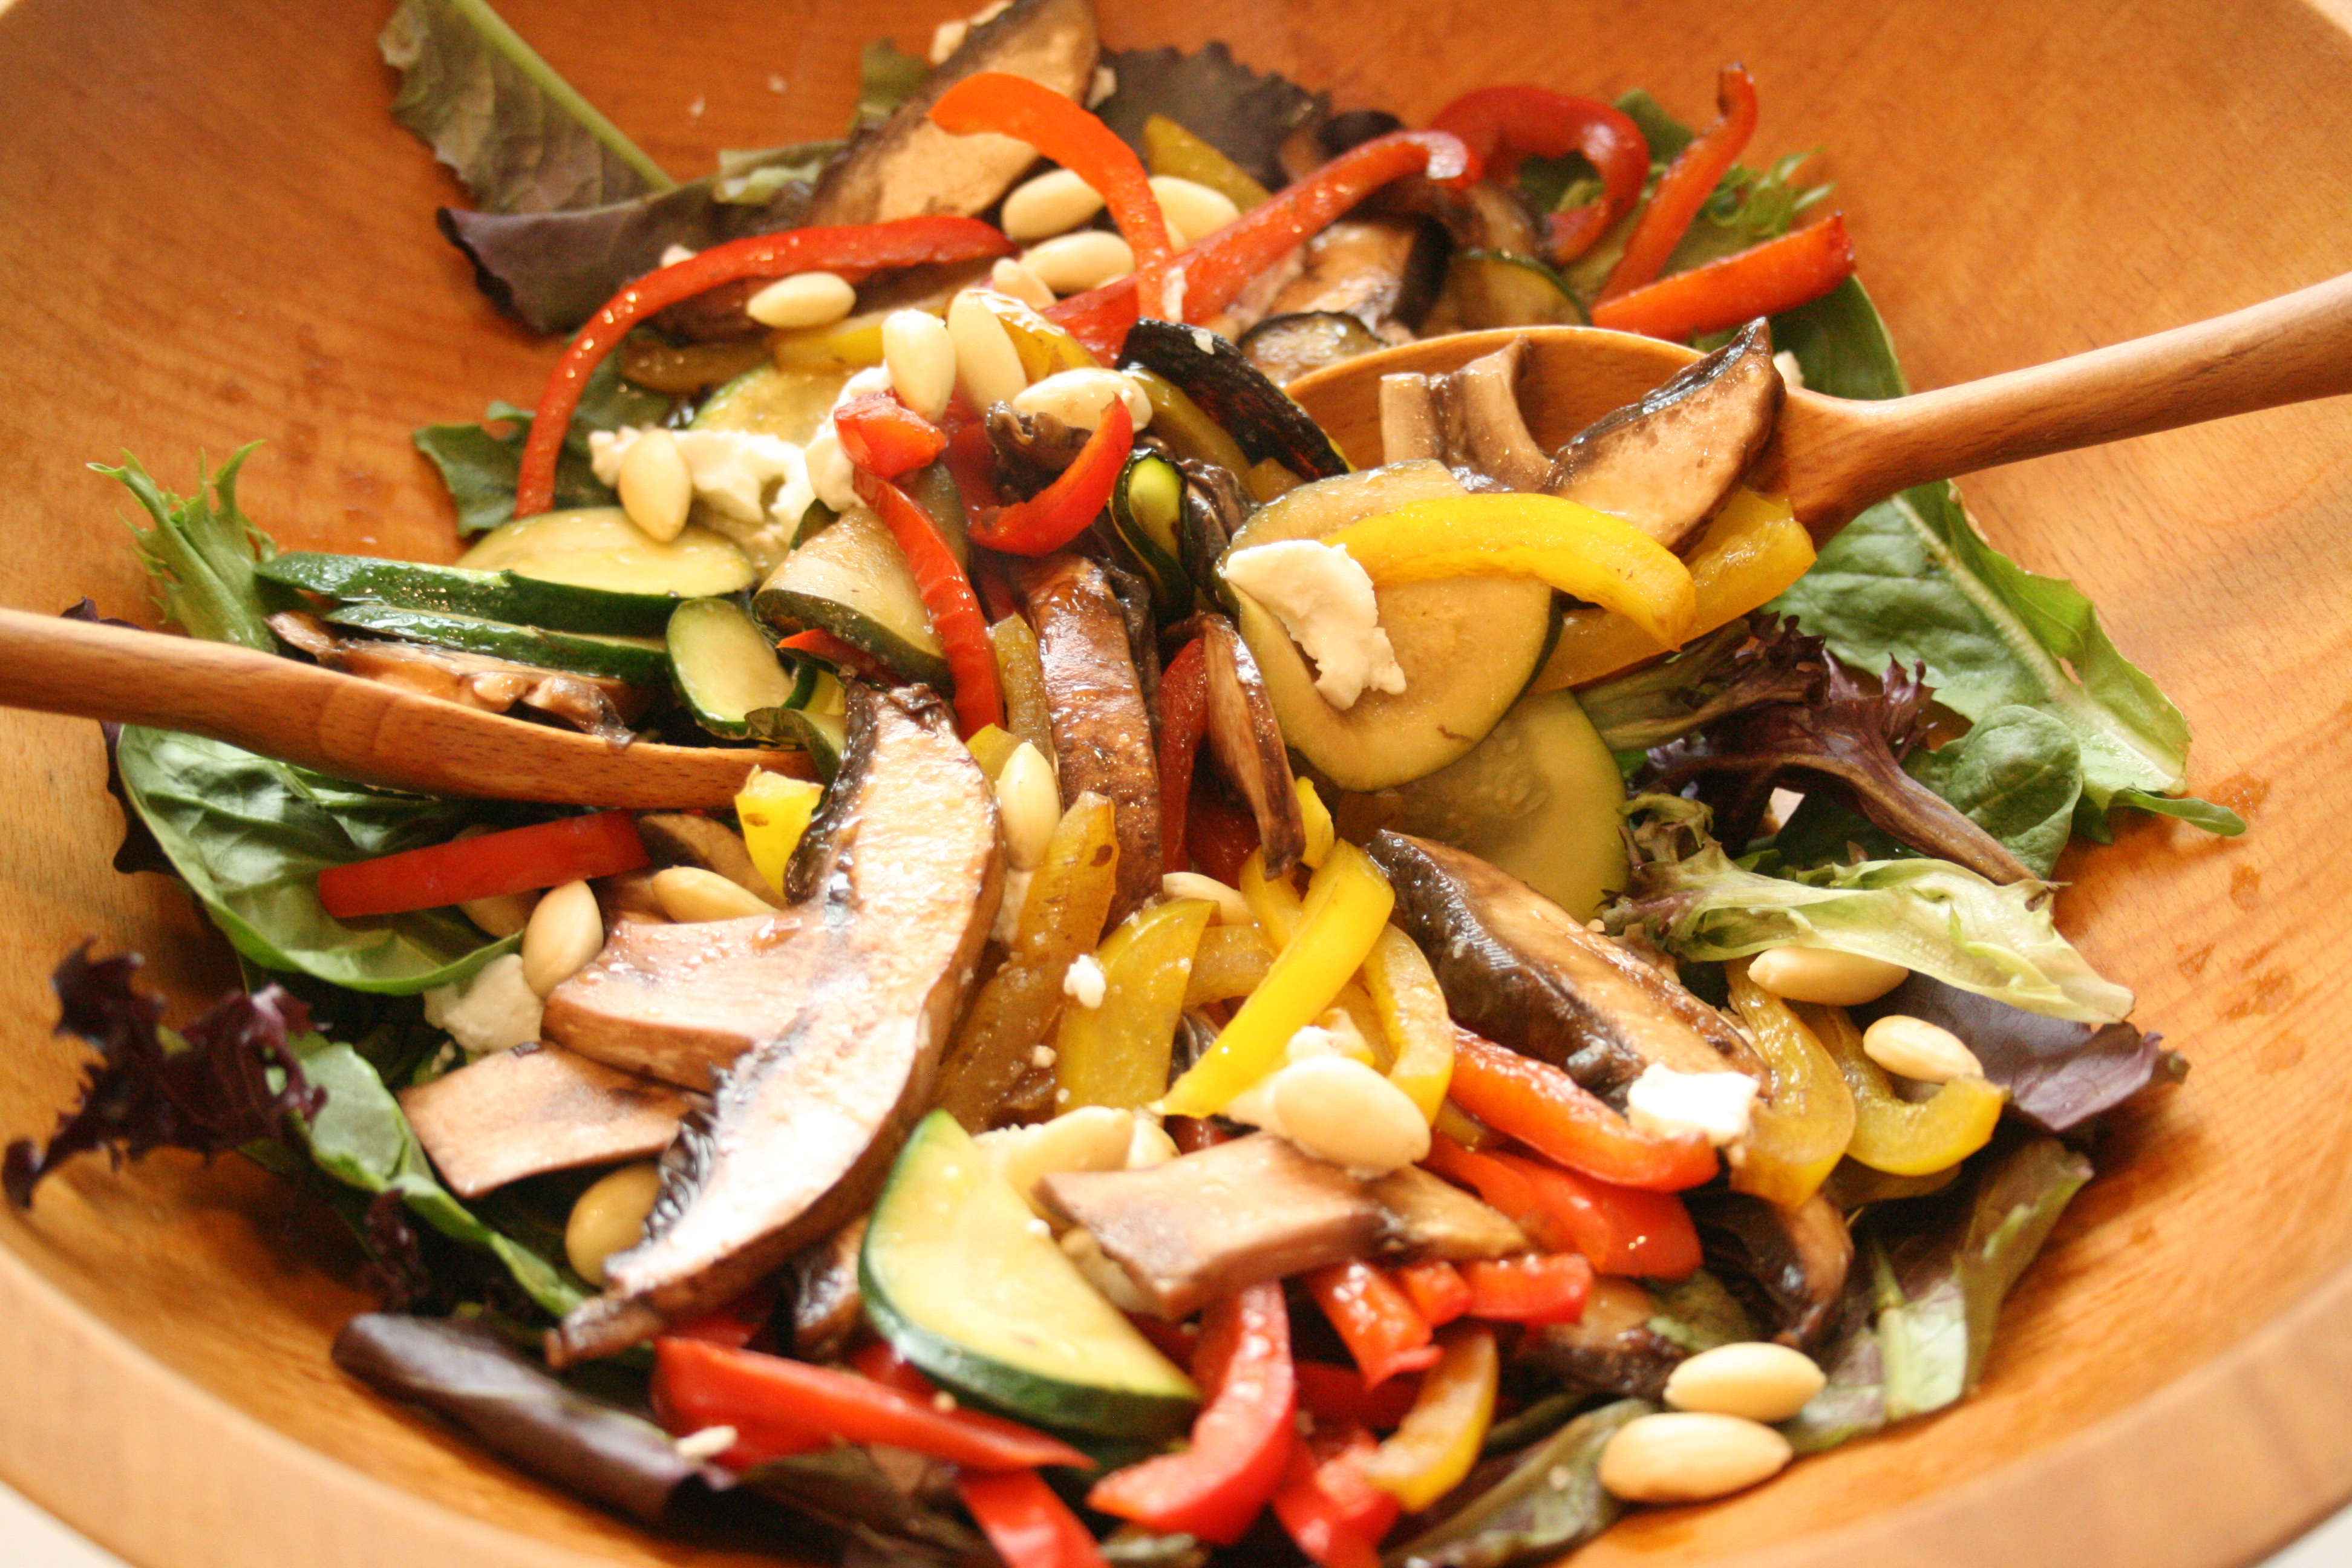 Toss together a Sautéed Vegetable Salad